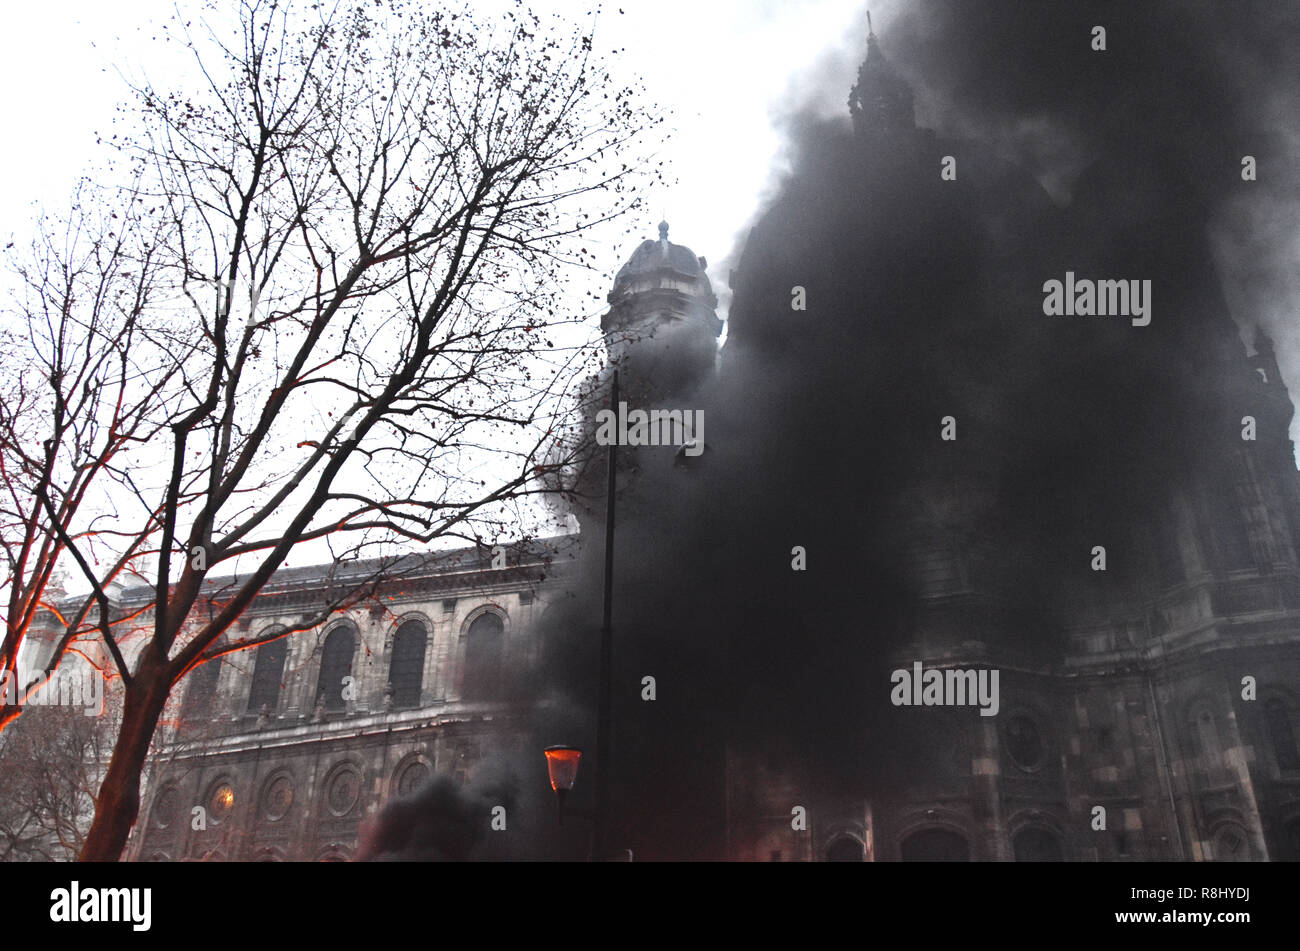 Paris, France. 8th Dec, 2018. Heavy smoke rises as protesters clash with police in Paris, France, on Dec. 8, 2018. Credit: Li Genxing/Xinhua/Alamy Live News Stock Photo